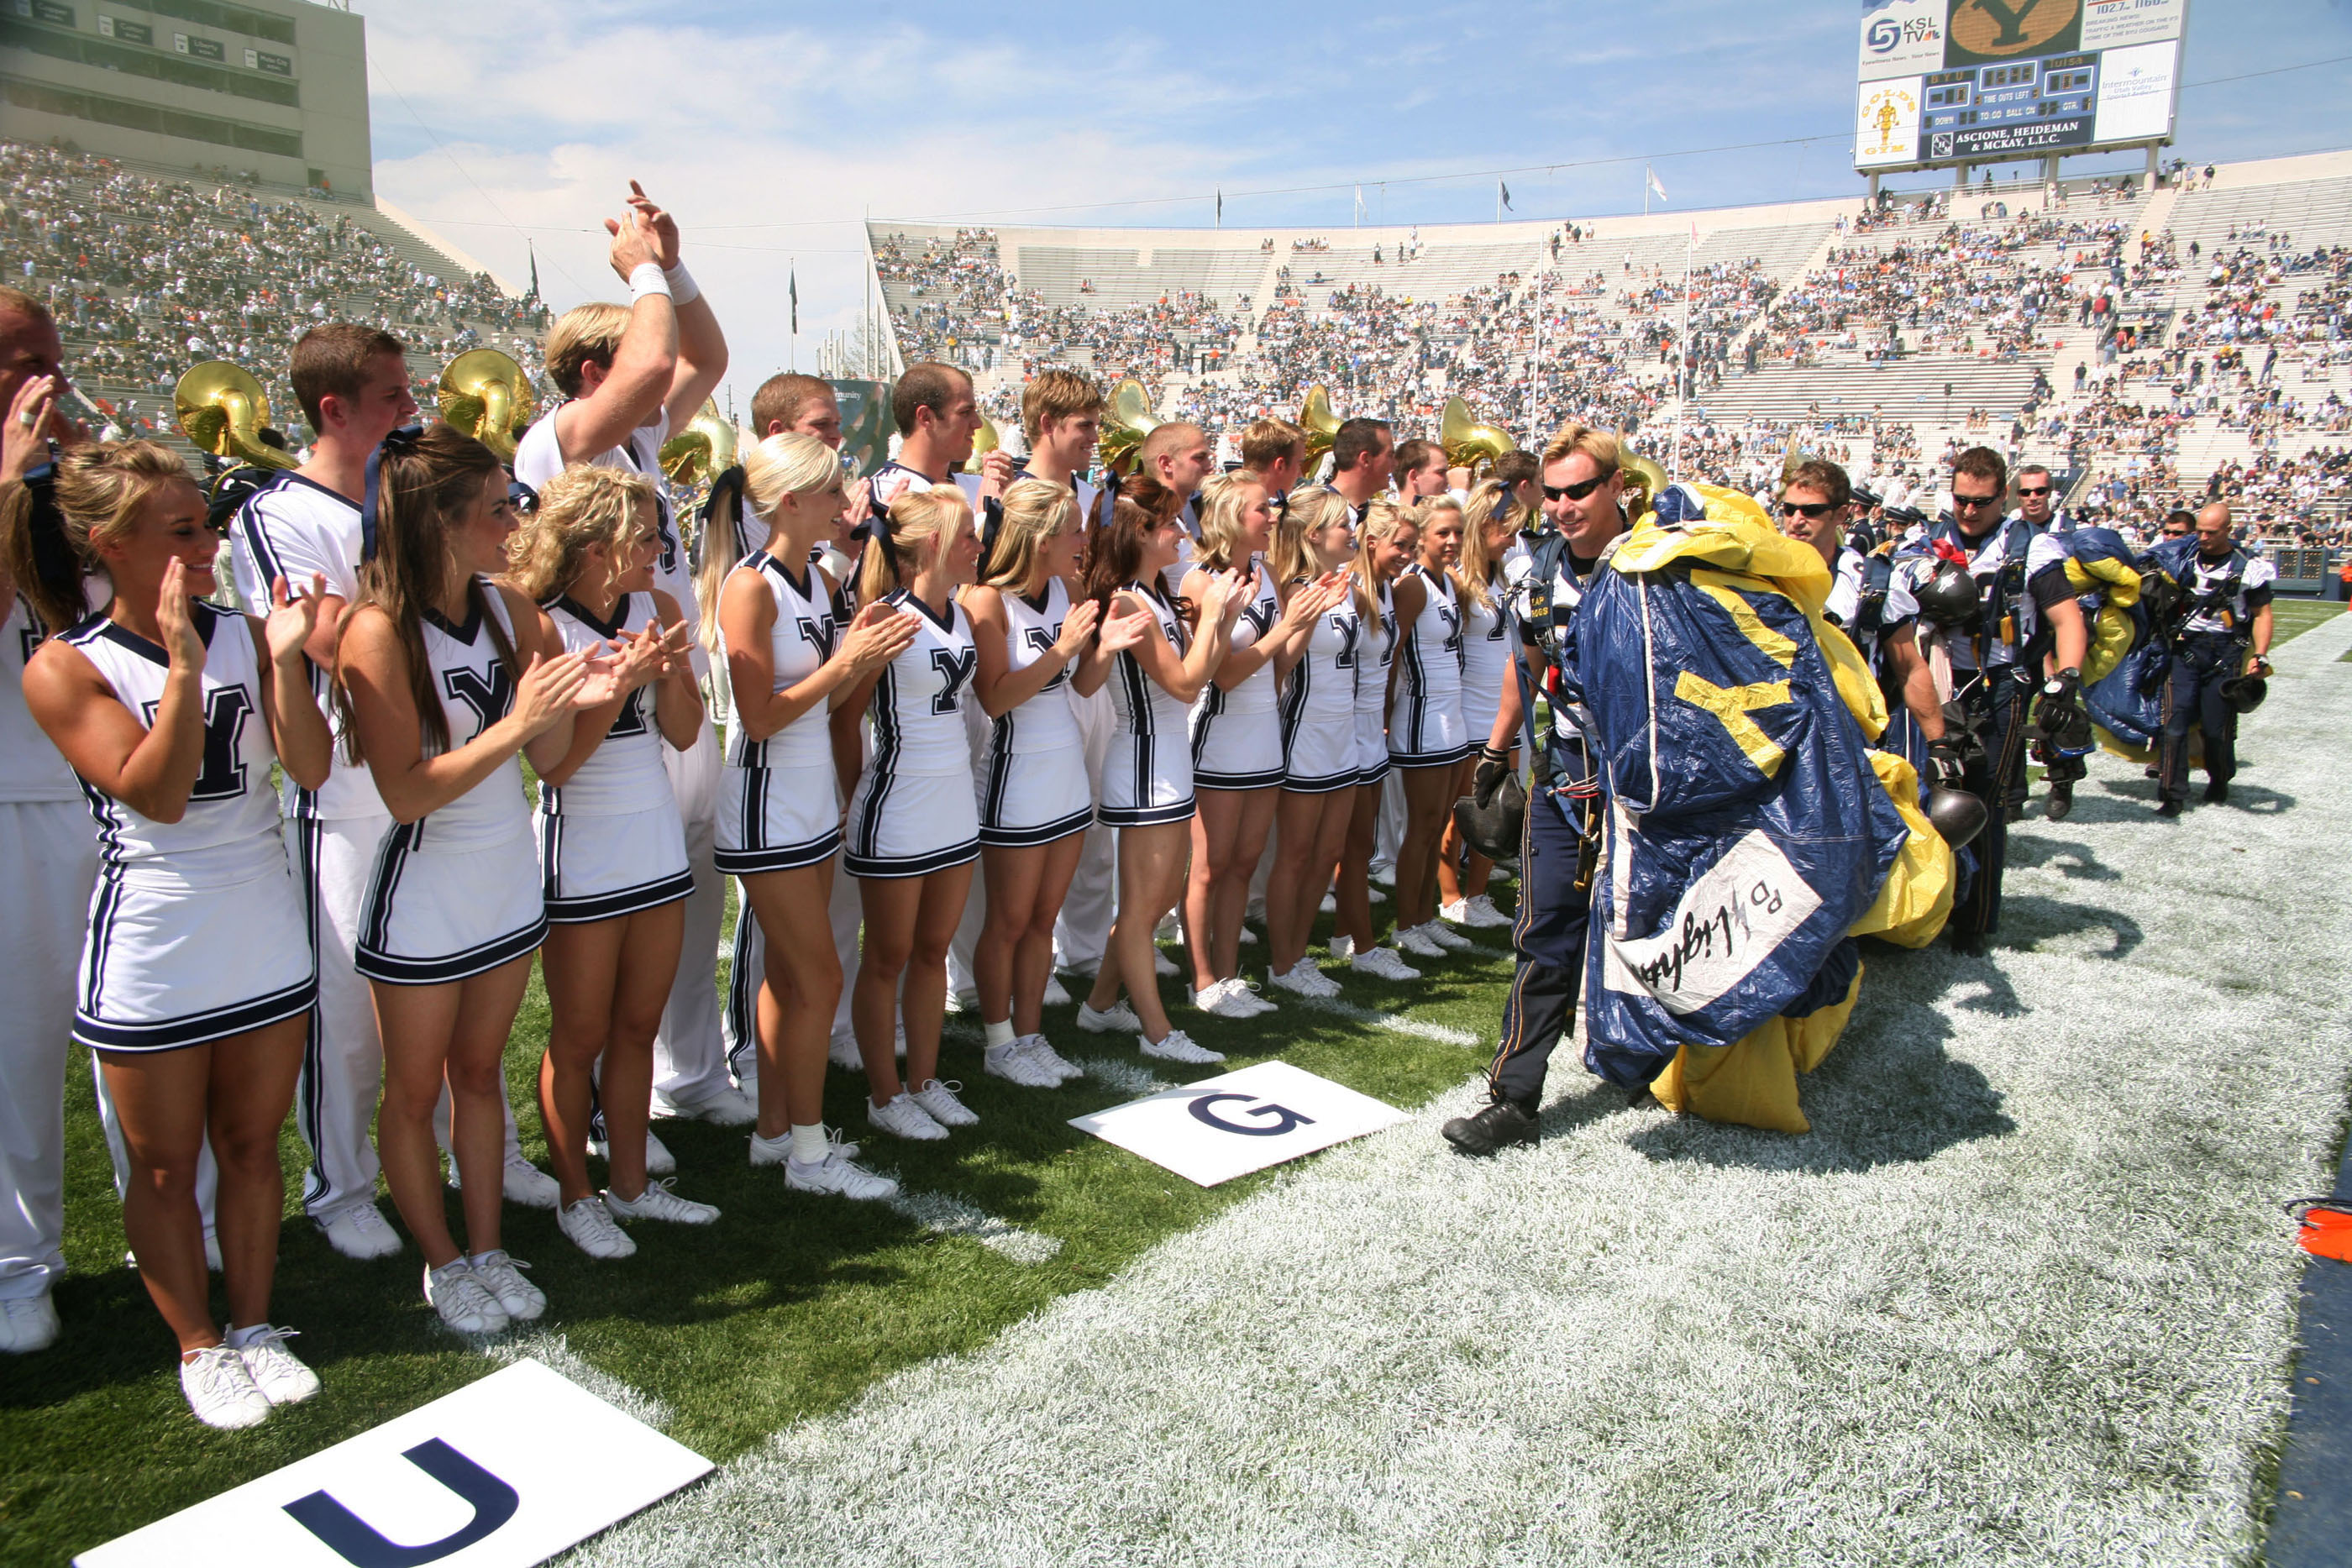 File:US Navy 060909-N-3271W-002 The Brigham Young University Cheer ...